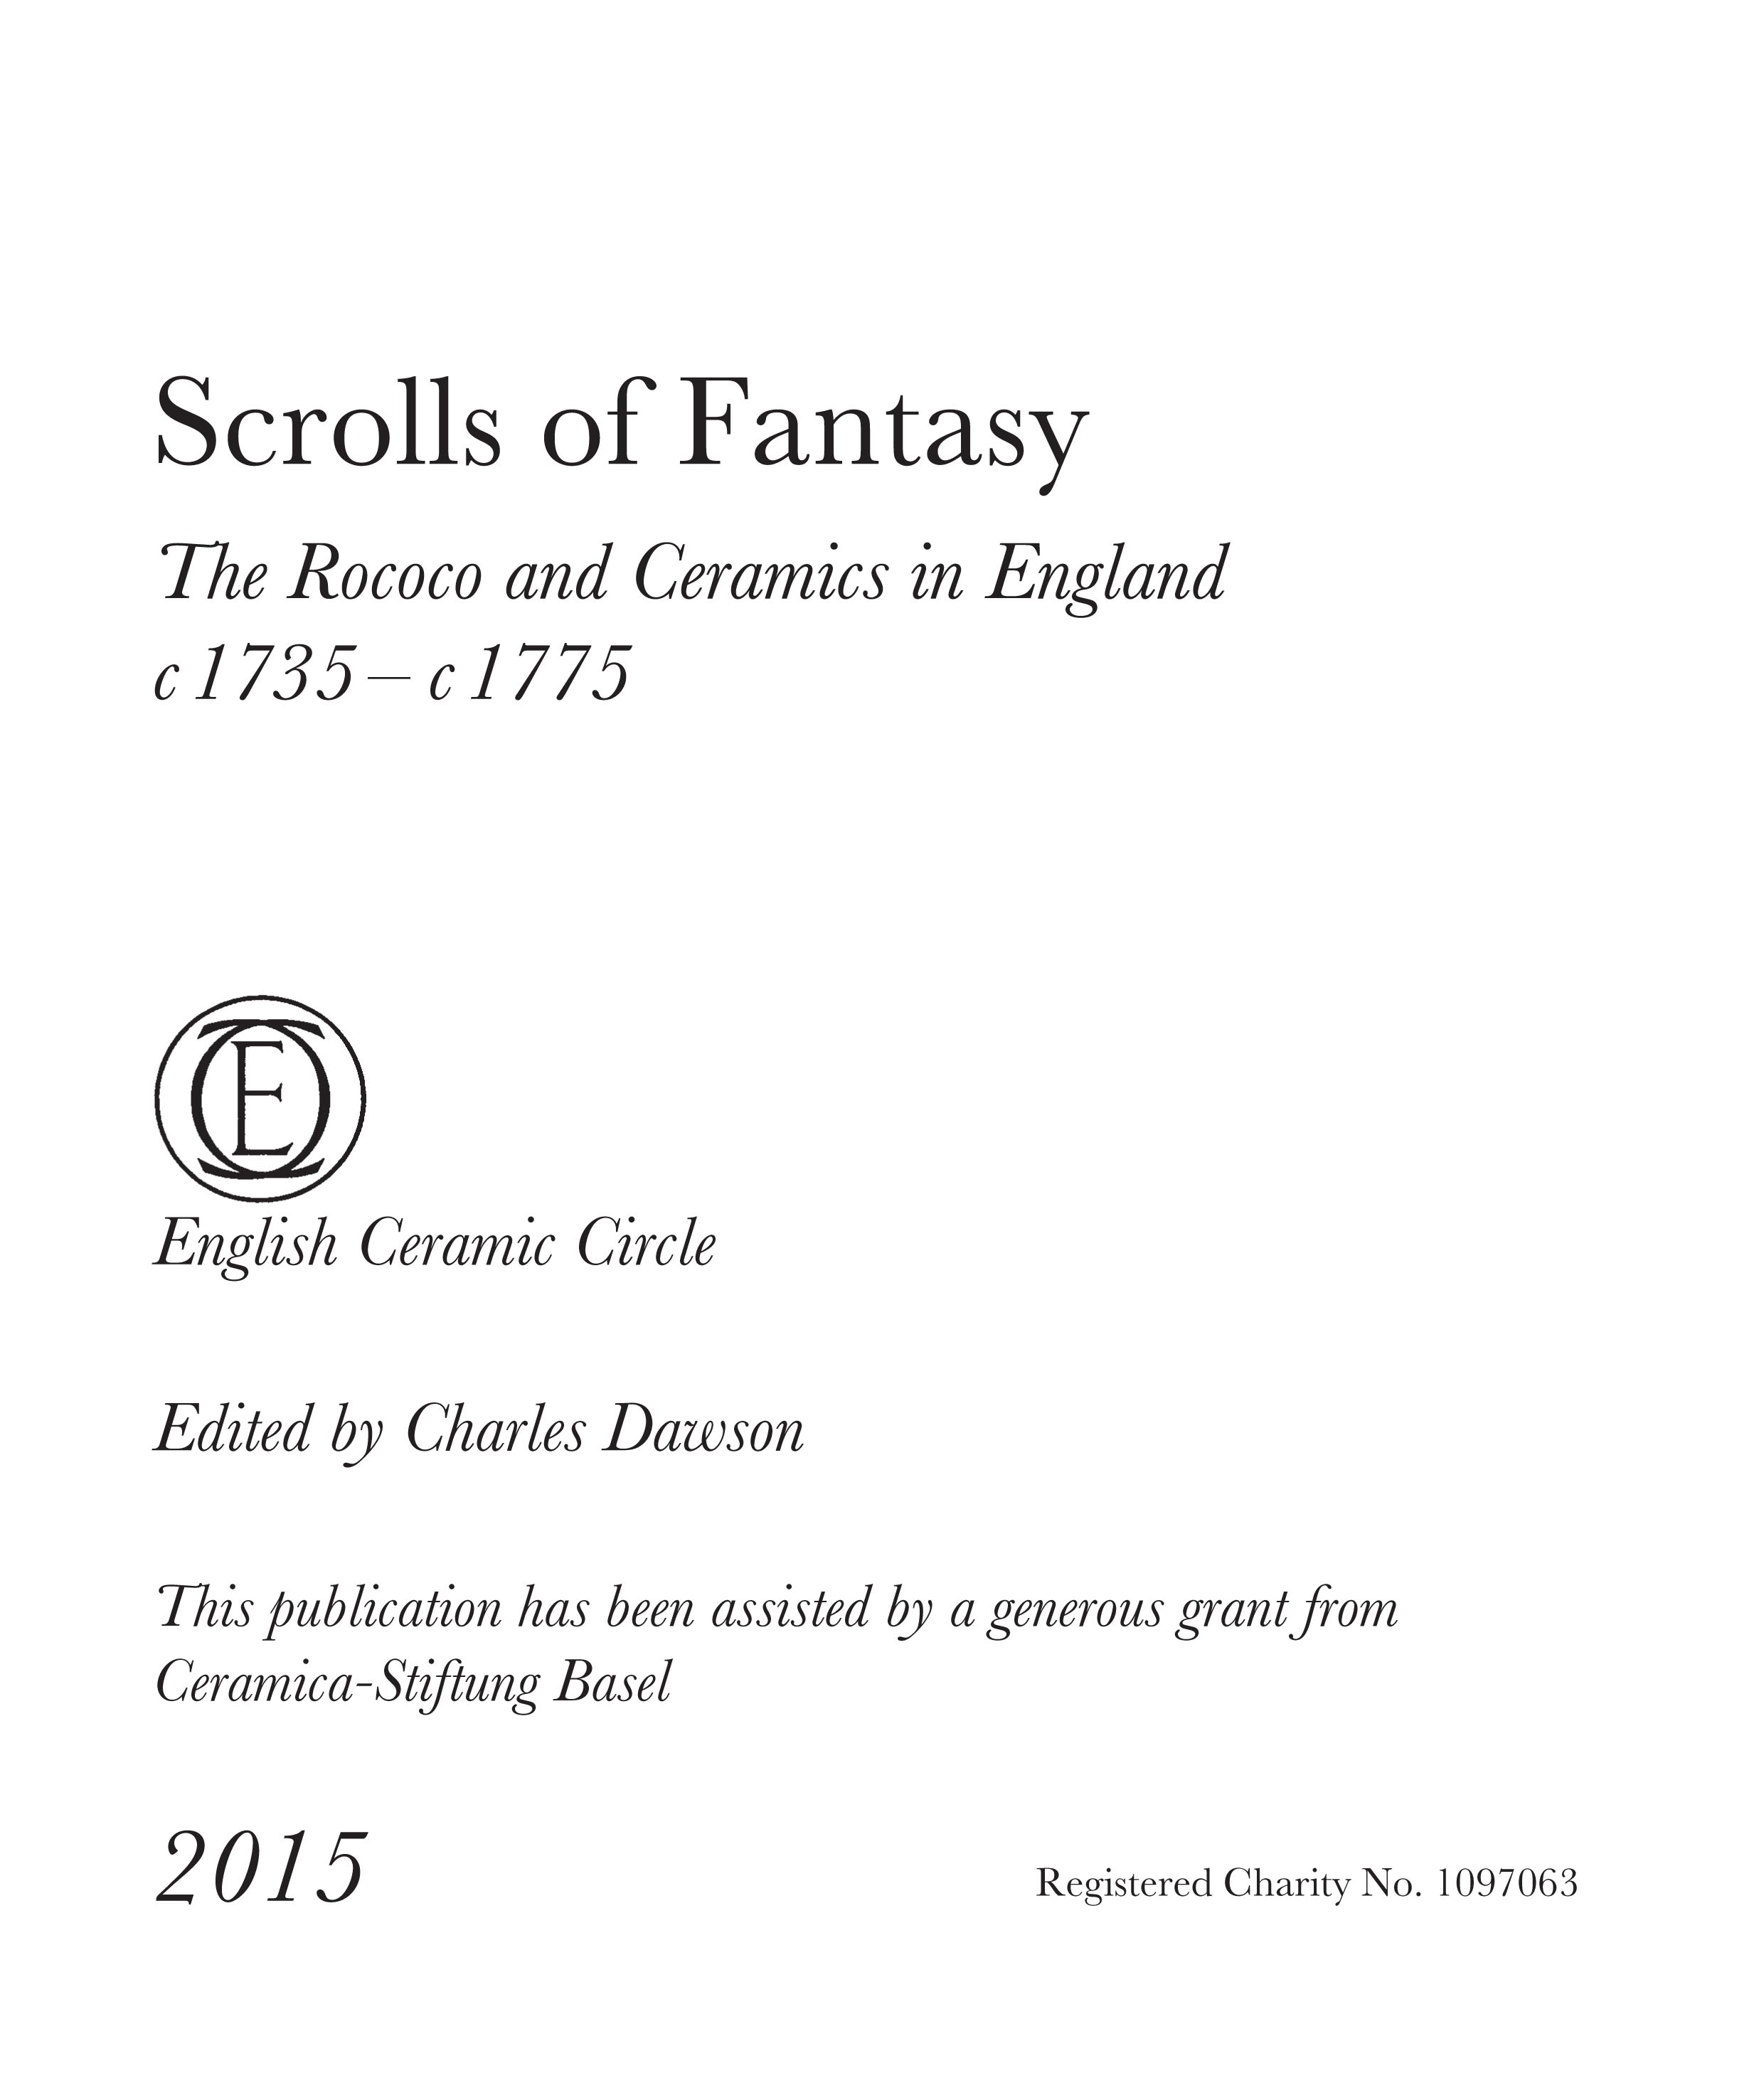 View Scrolls of Fantasy - The Rococo and its influence on Ceramics in England, c 1735-1775